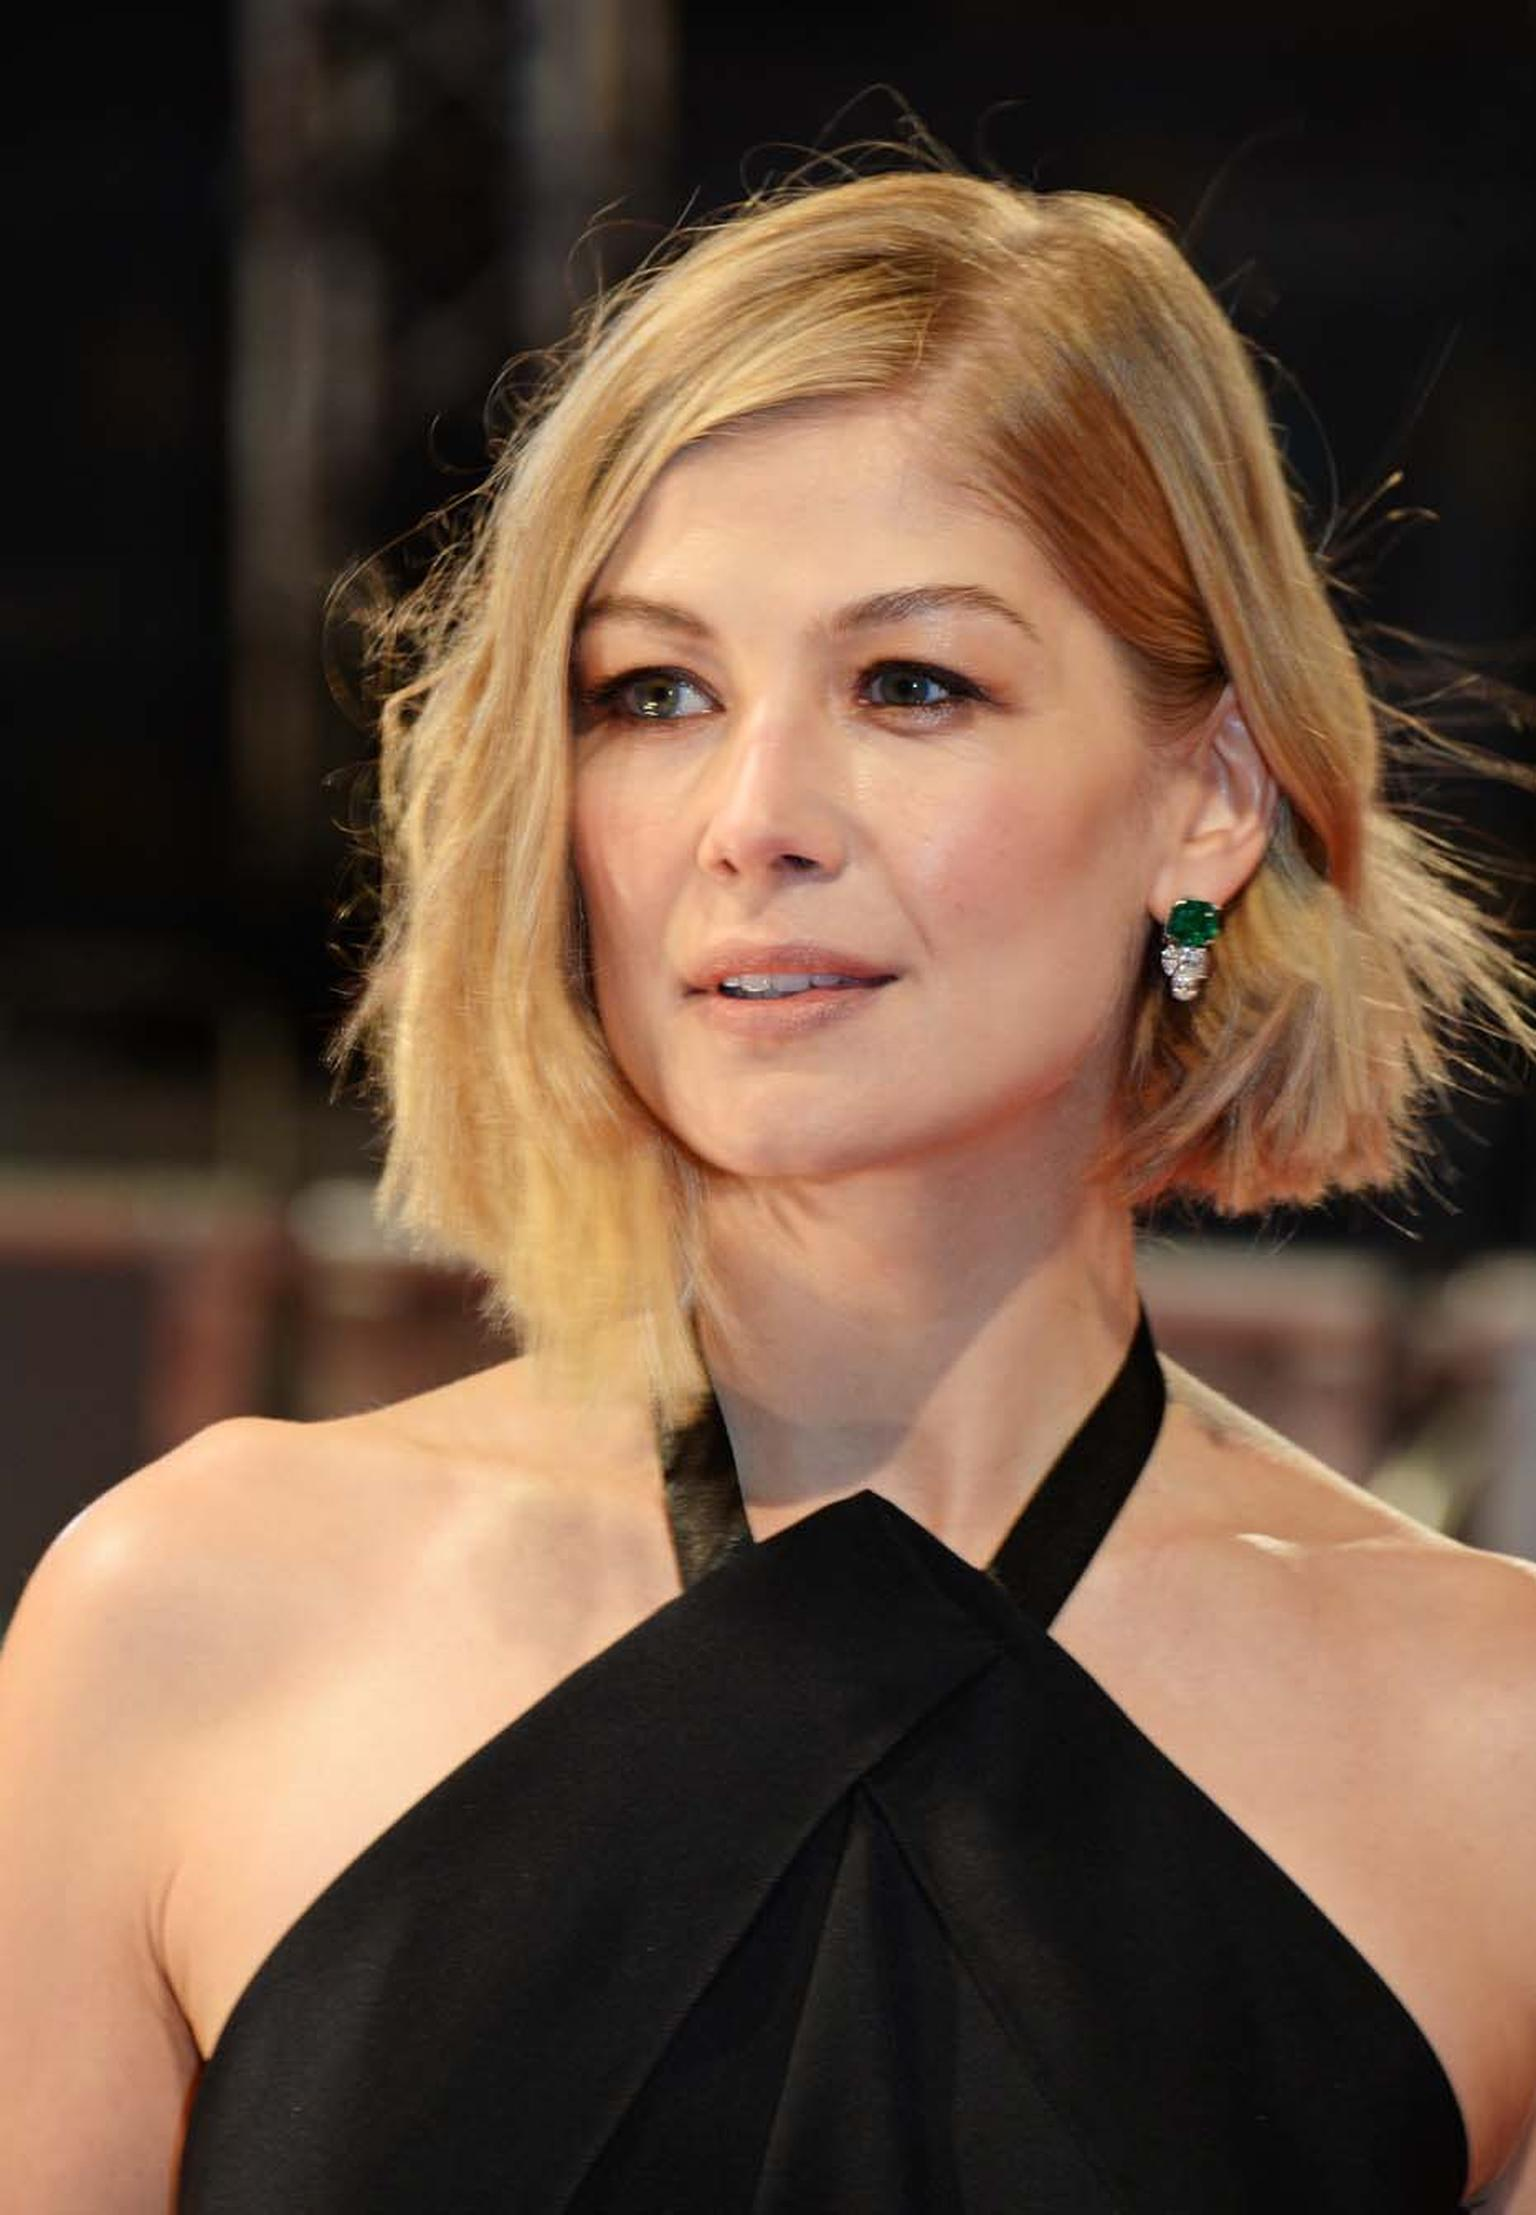 British Best Actress Nominee for her lead role in Gone Girl, Rosamund Pike looked gorgeous in Bulgari jewelry at the 2015 BAFTAs.